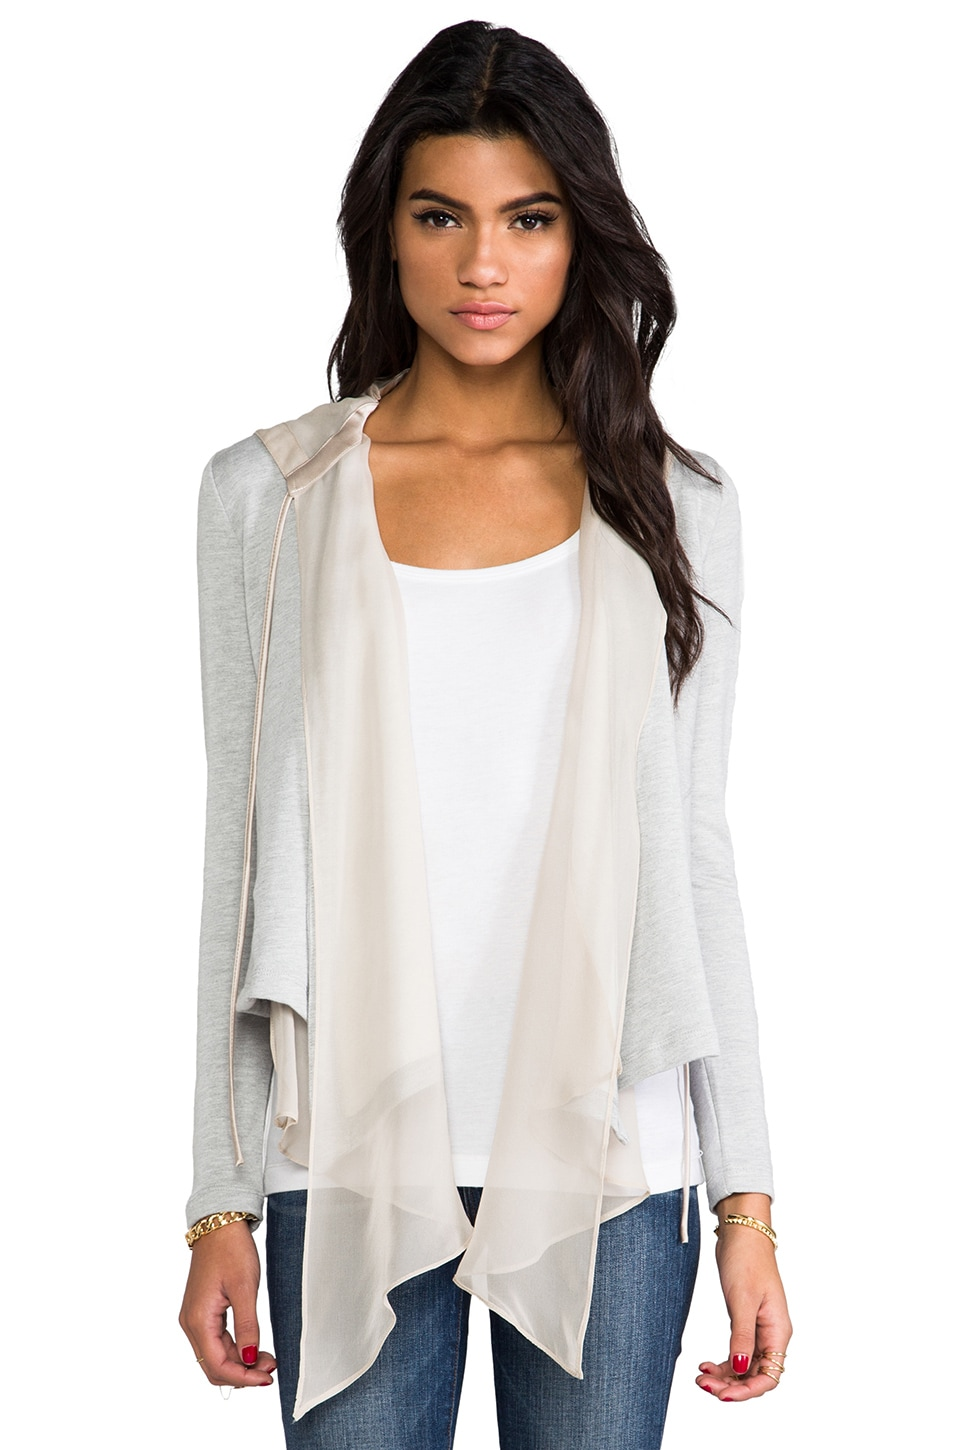 Heather Silk Hooded Cardigan in Light Heather Grey